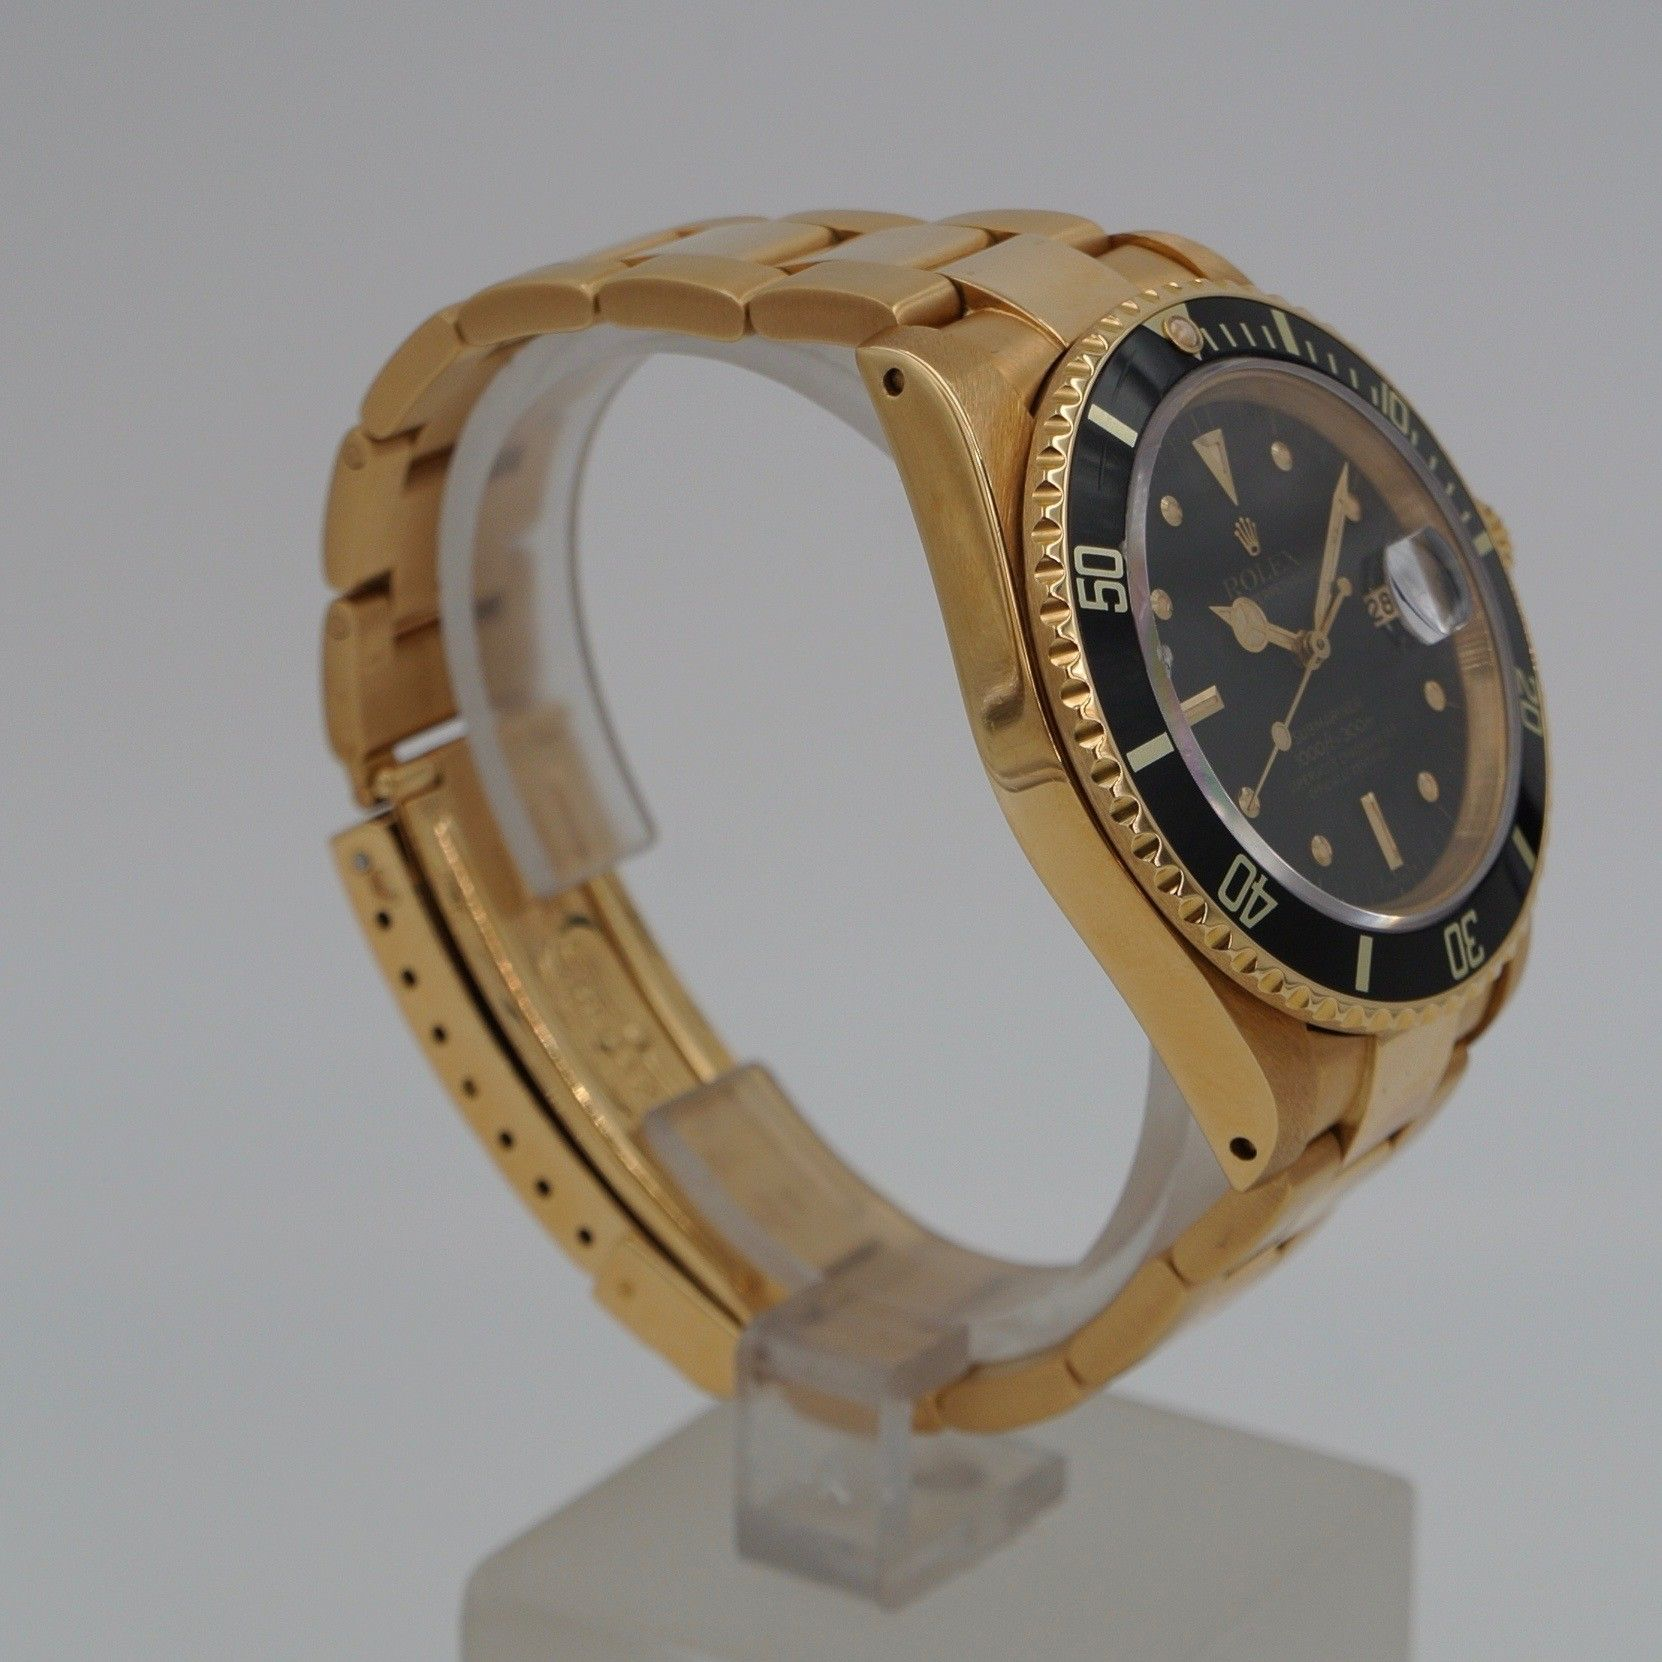 Rolex Submariner oro 16808